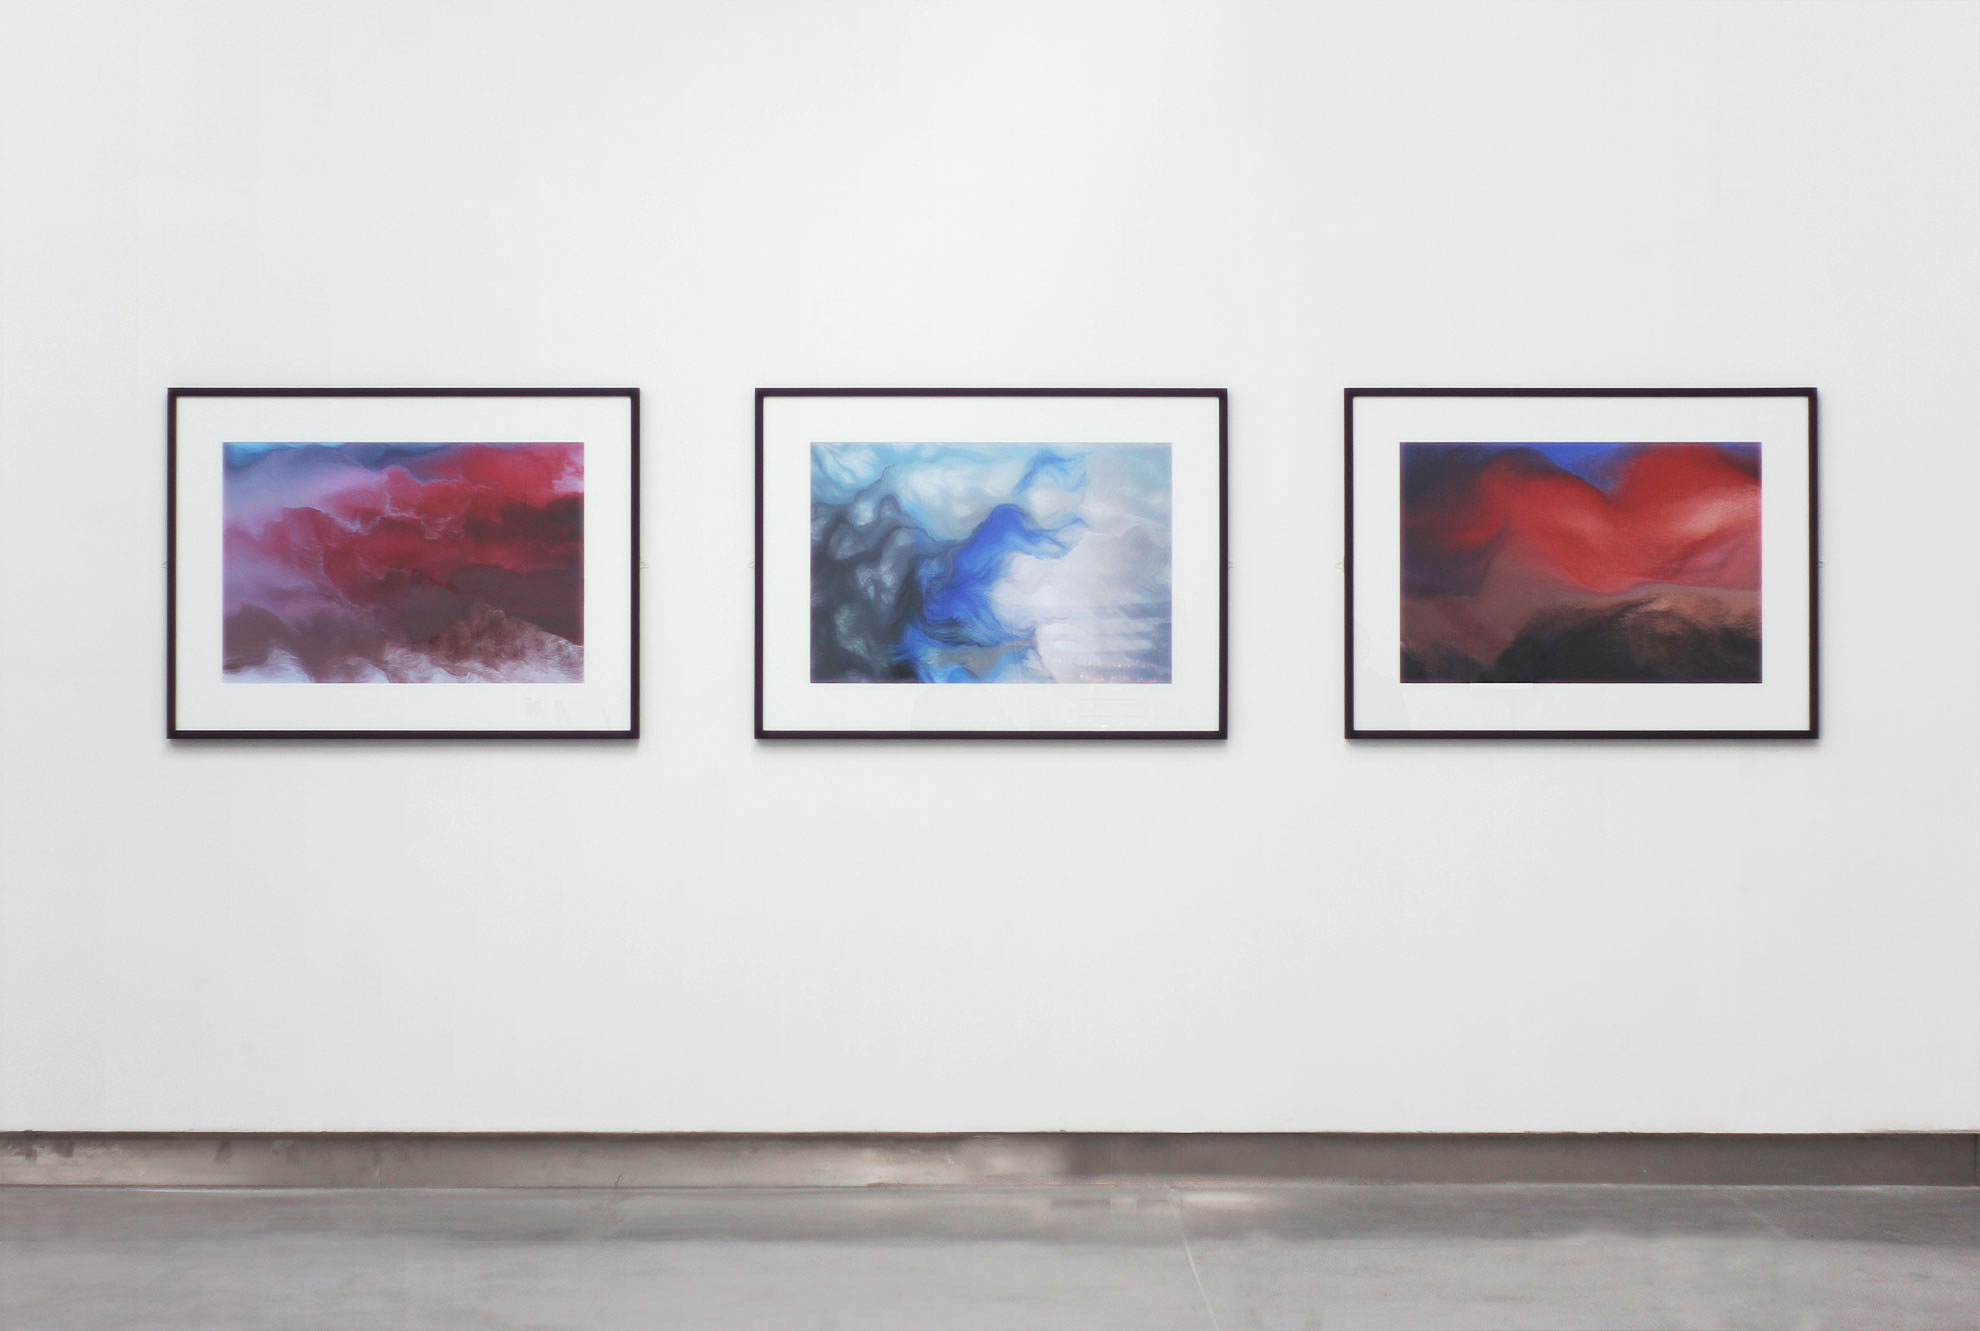 schwarm generative artwork installation view